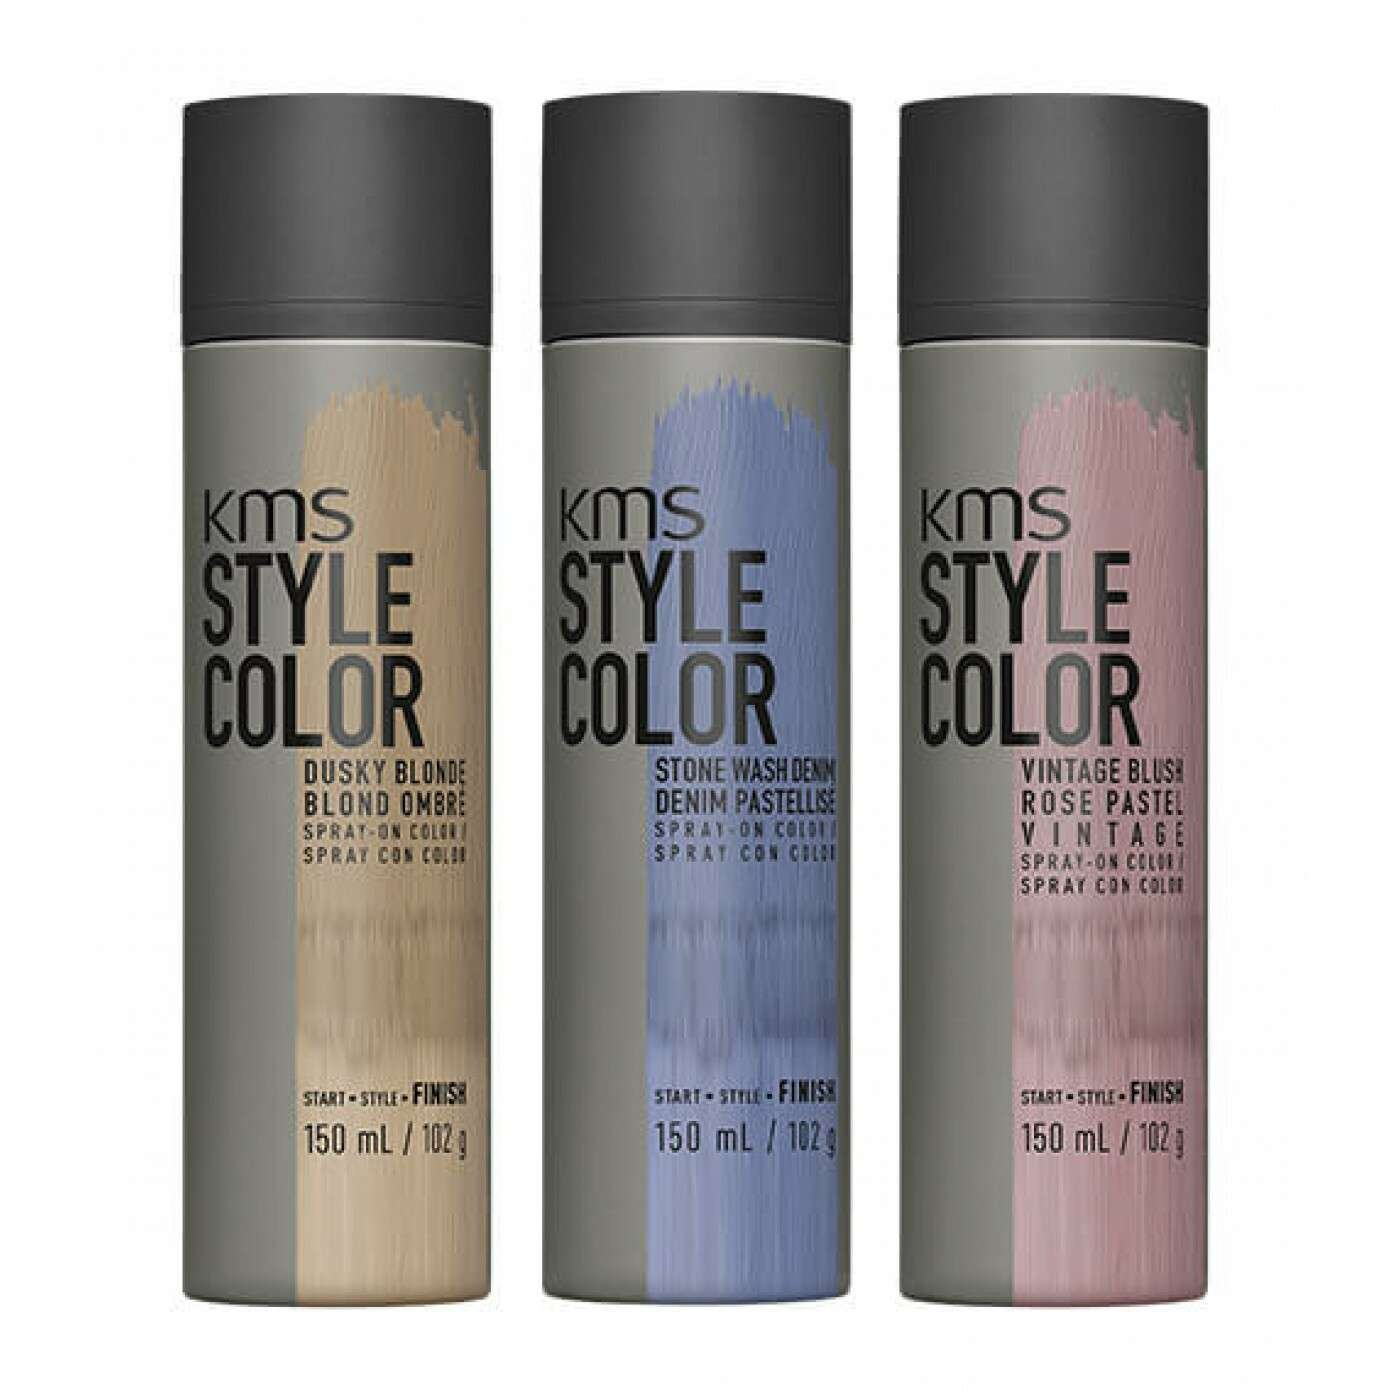 KMS STYLECOLOR cans